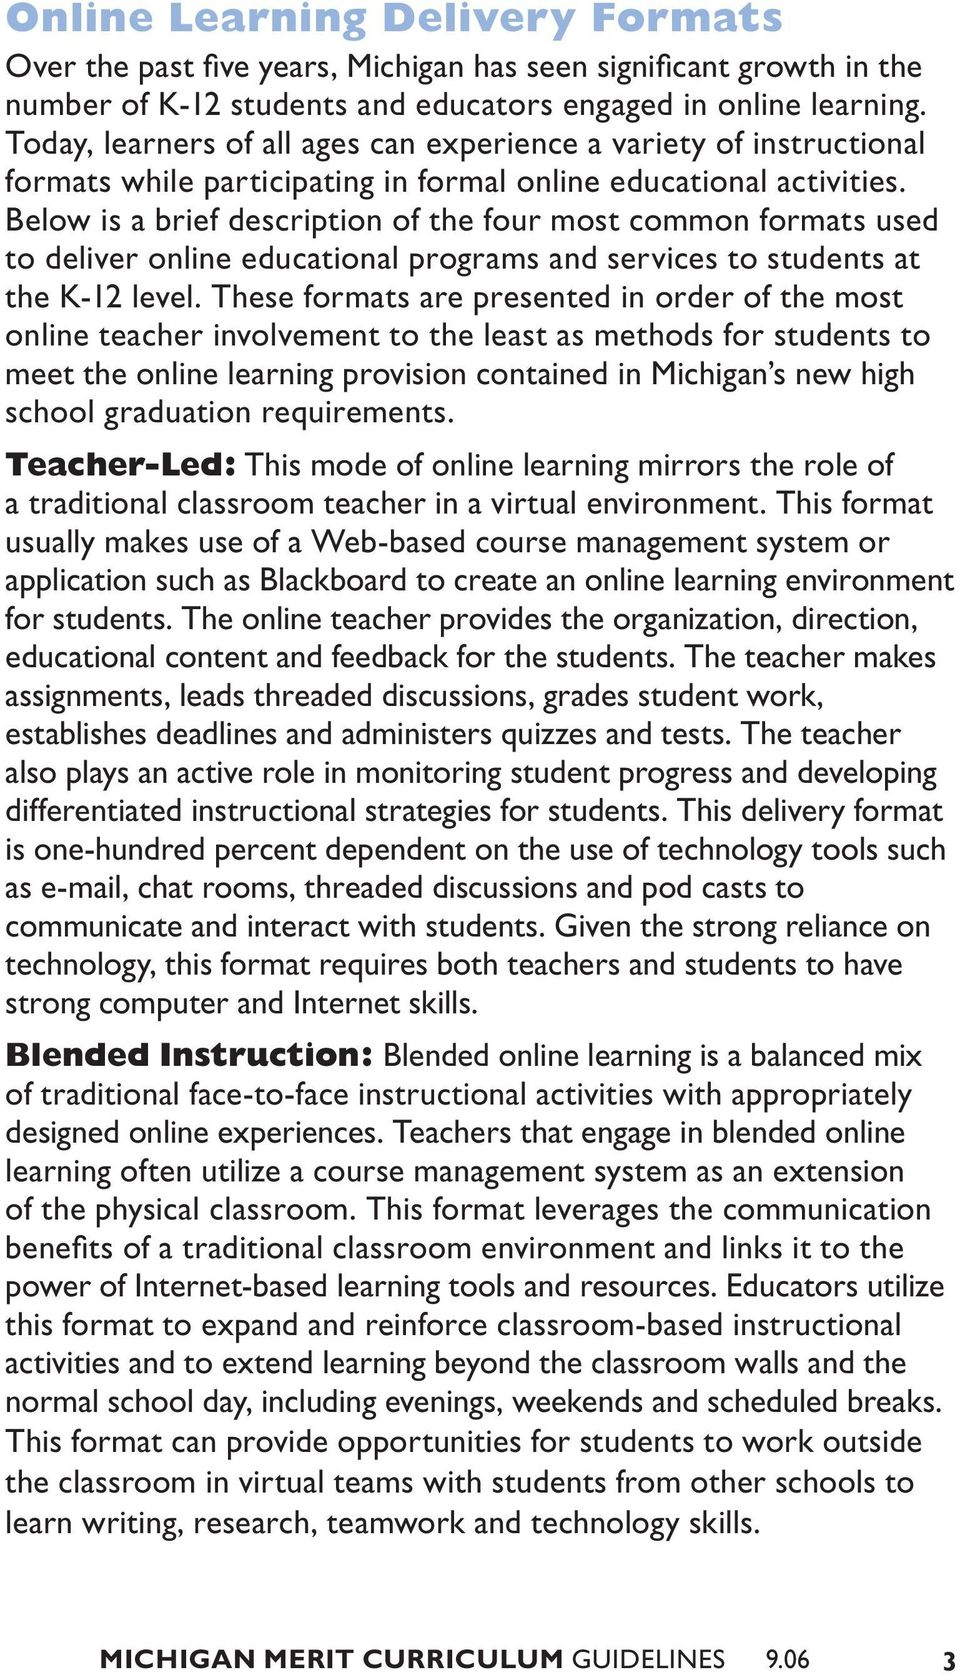 Below is a brief description of the four most common formats used to deliver online educational programs and services to students at the K-12 level.